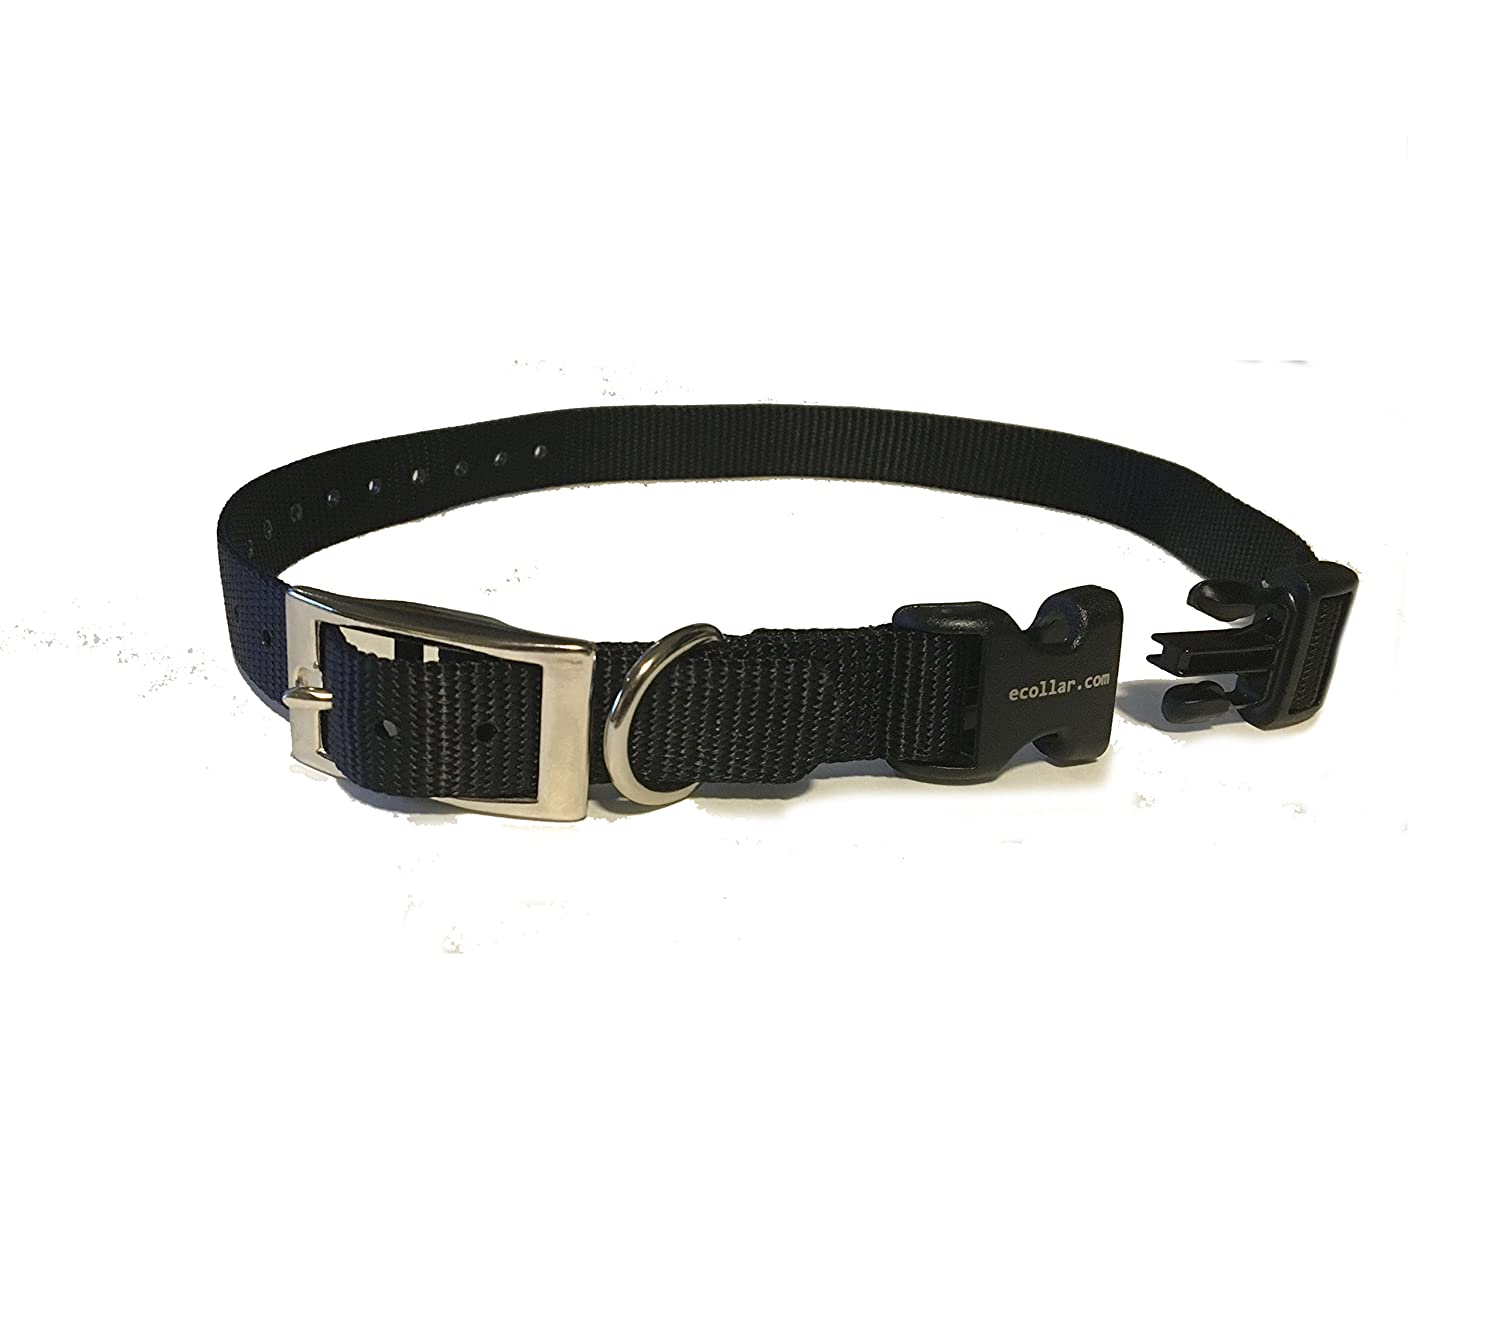 Educator E Collar 3 4  Quick Snap Double Buckle Replacement Dog Strap,Black